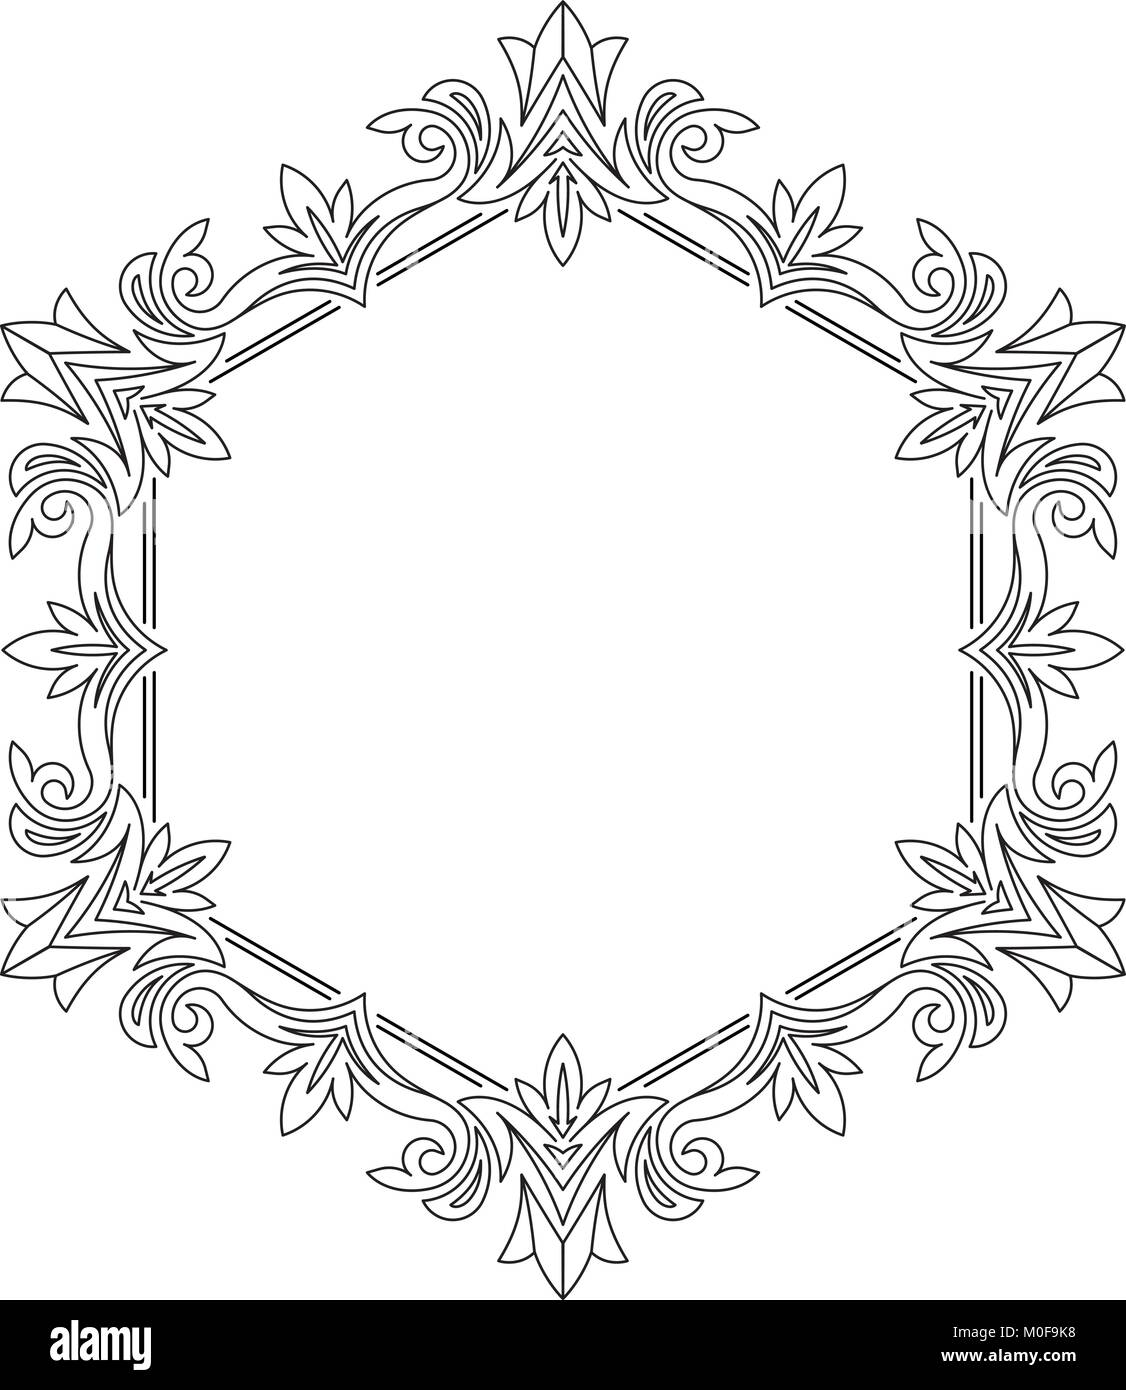 Unusual, hexagonal, lace frame, decorative element with empty place for your text. Vector illustration. Stock Vector